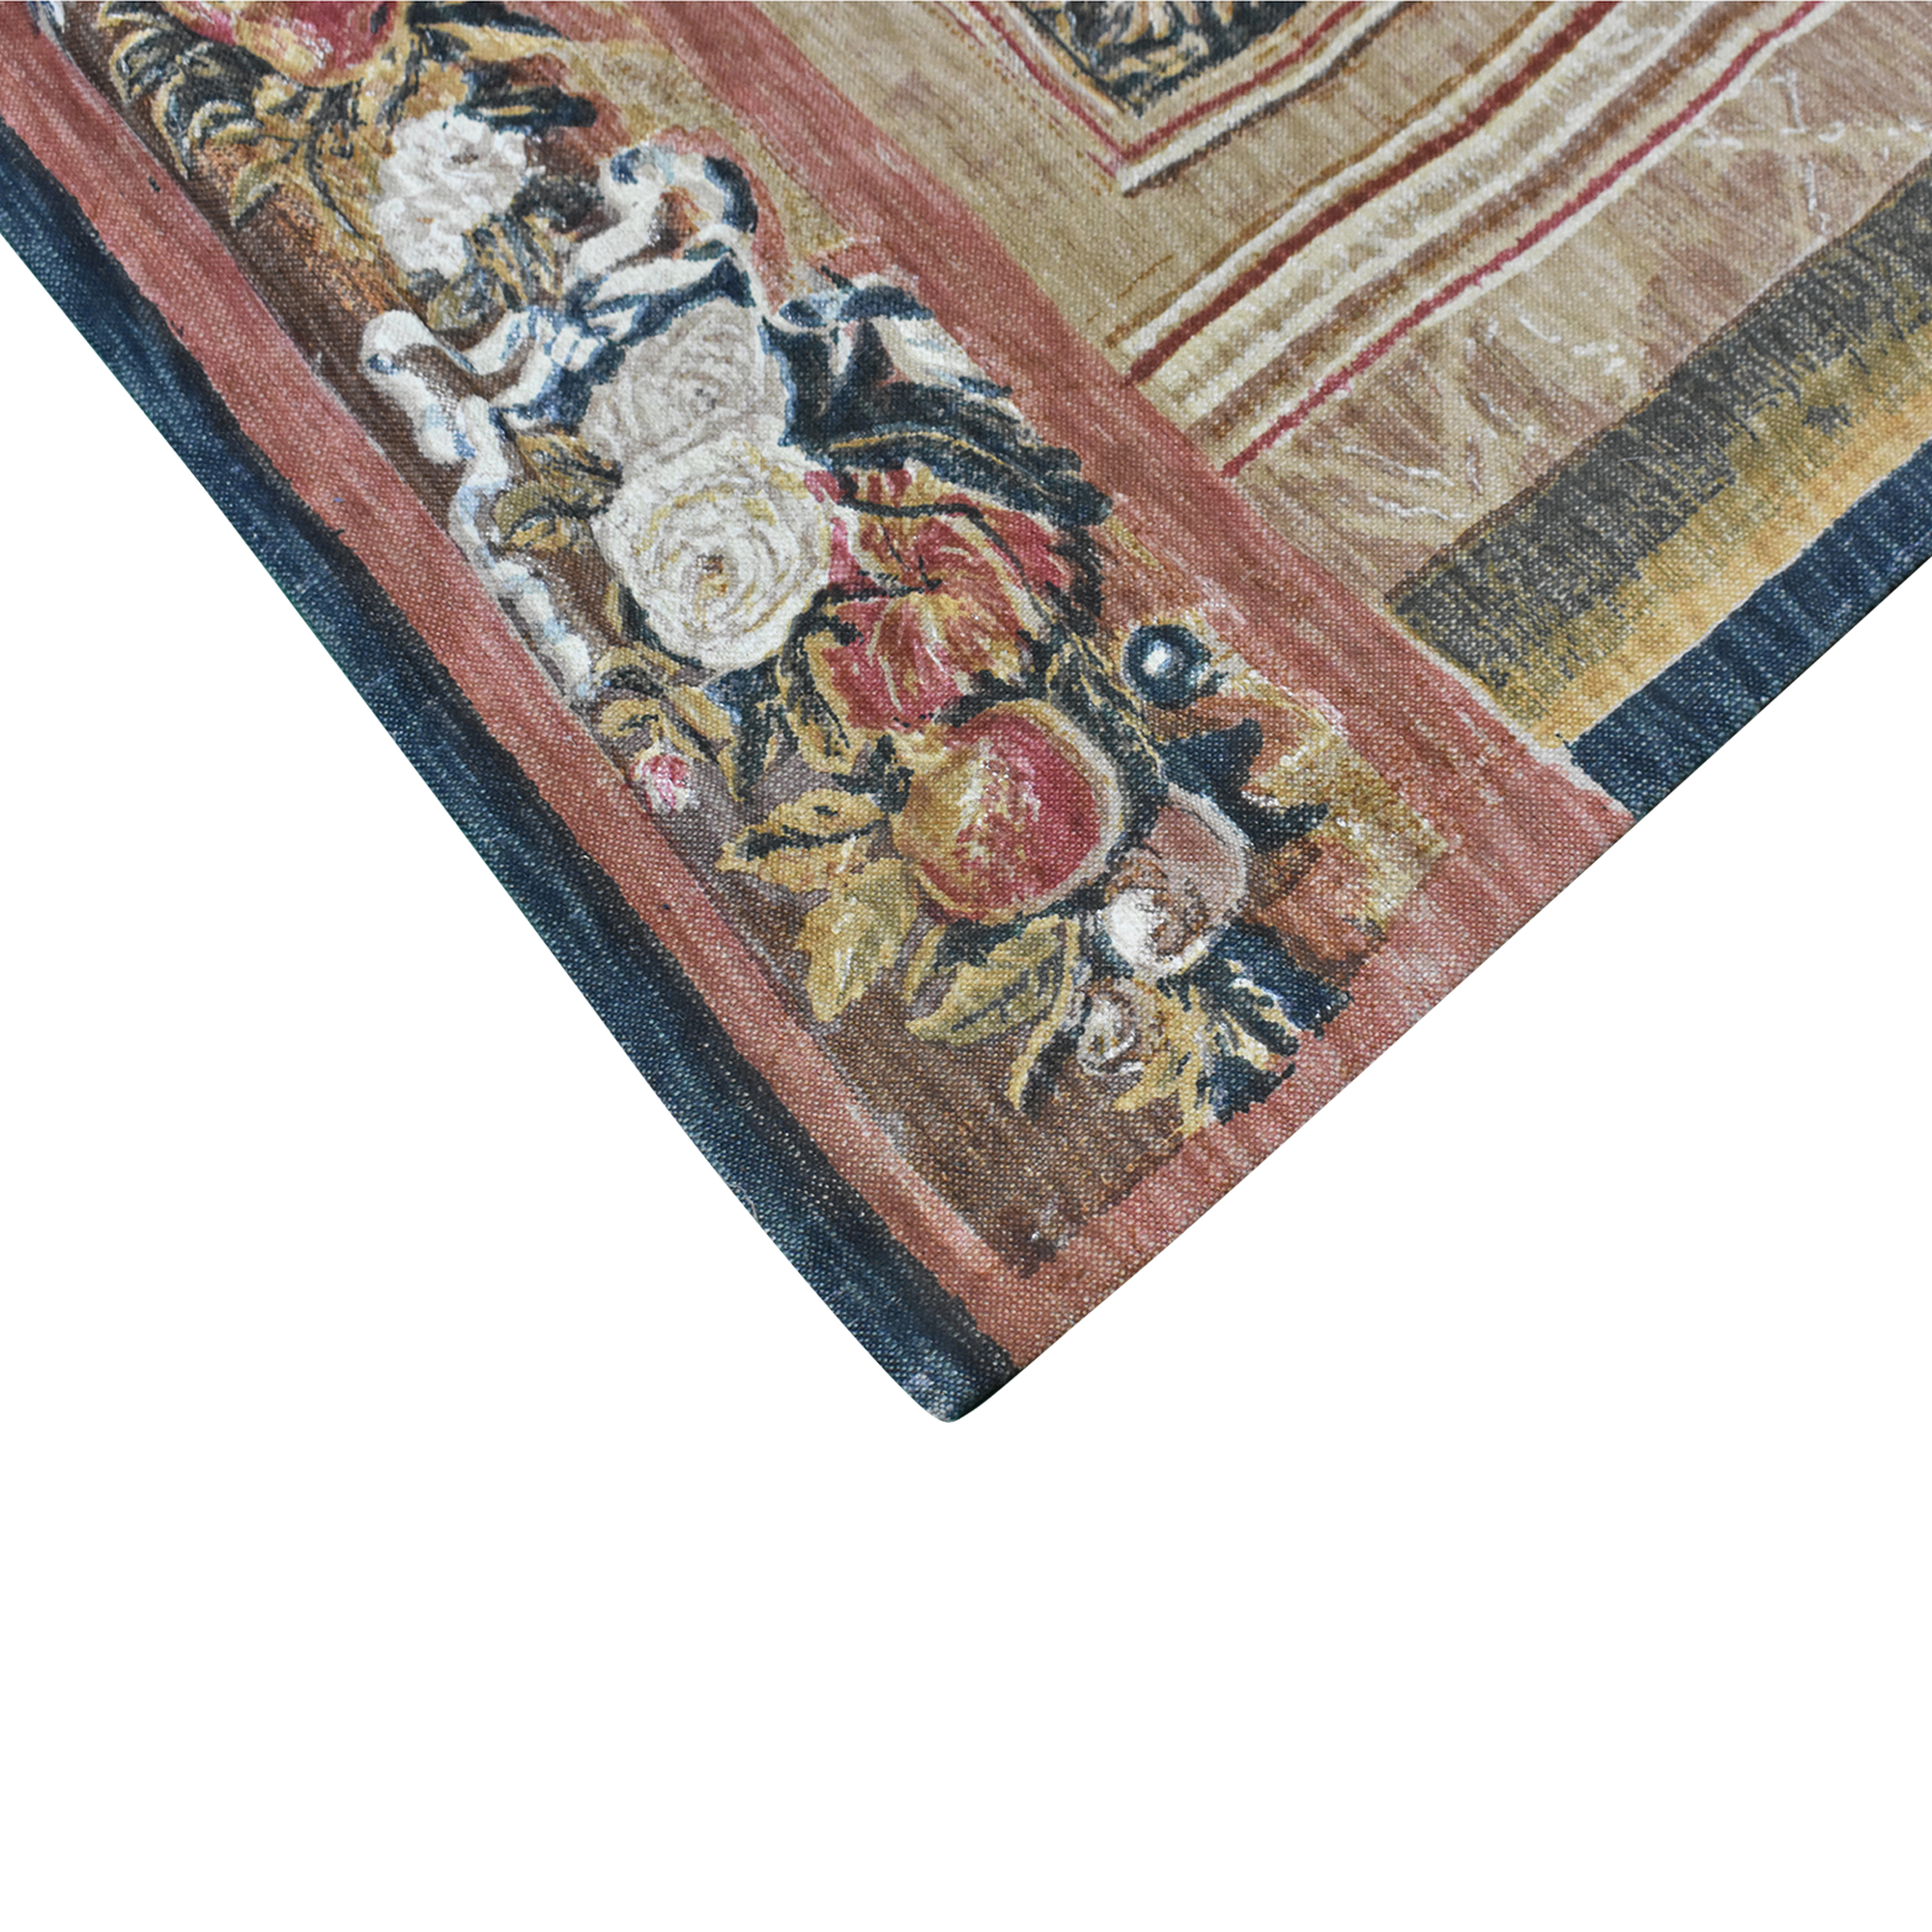 Decorative Versailles Still Life Tapestry used